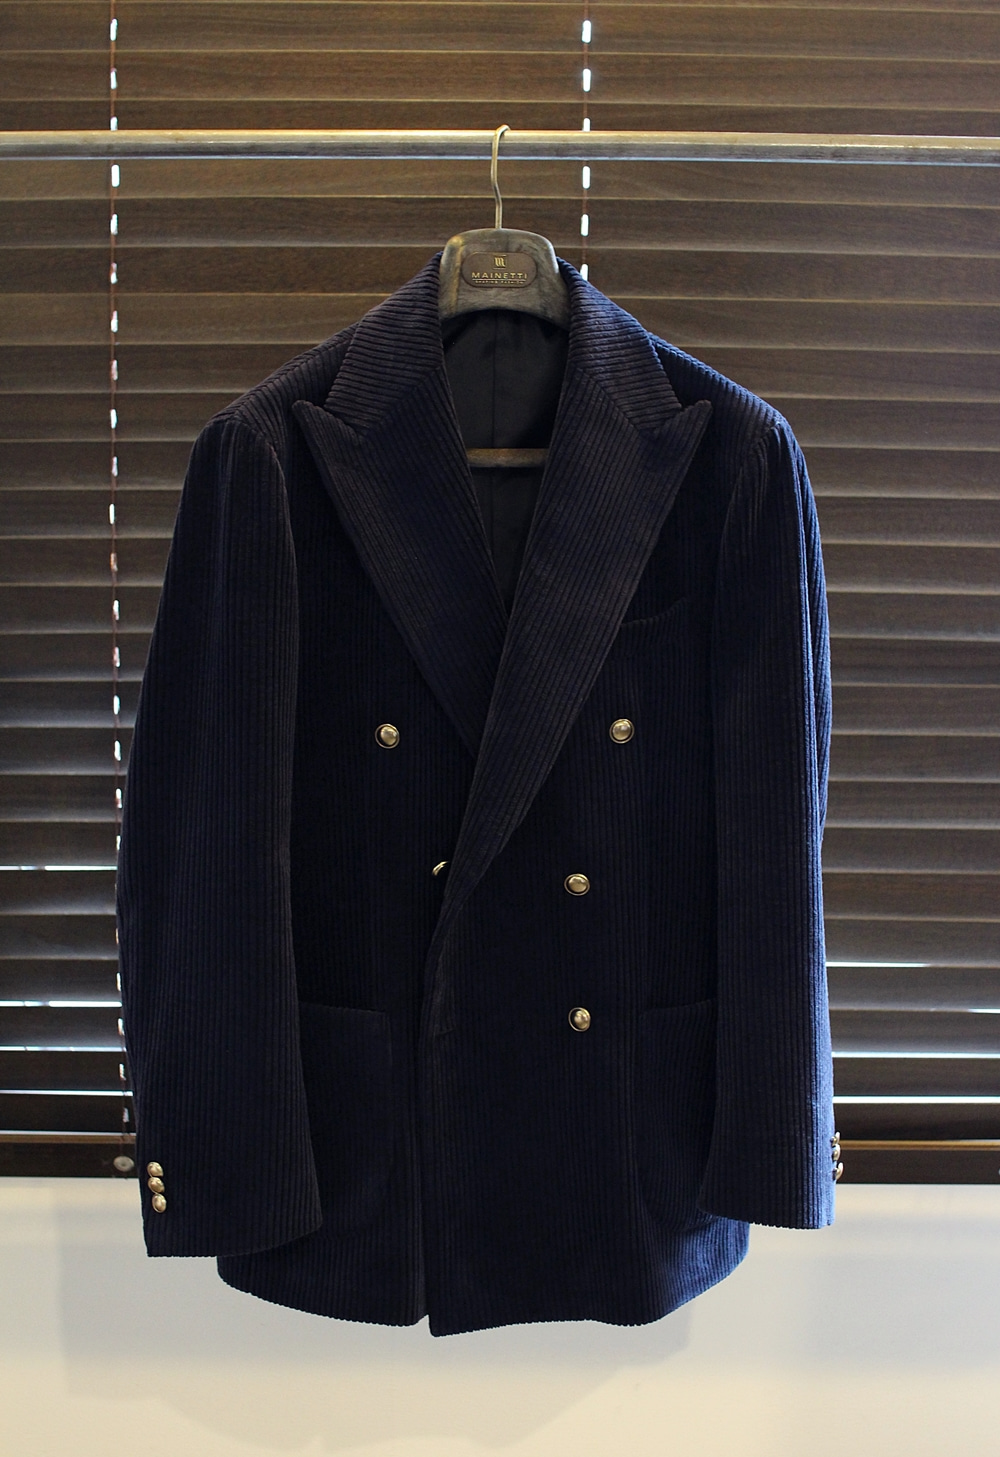 Double corduroy jacket NavyCOMPLETO(꼼플레토)